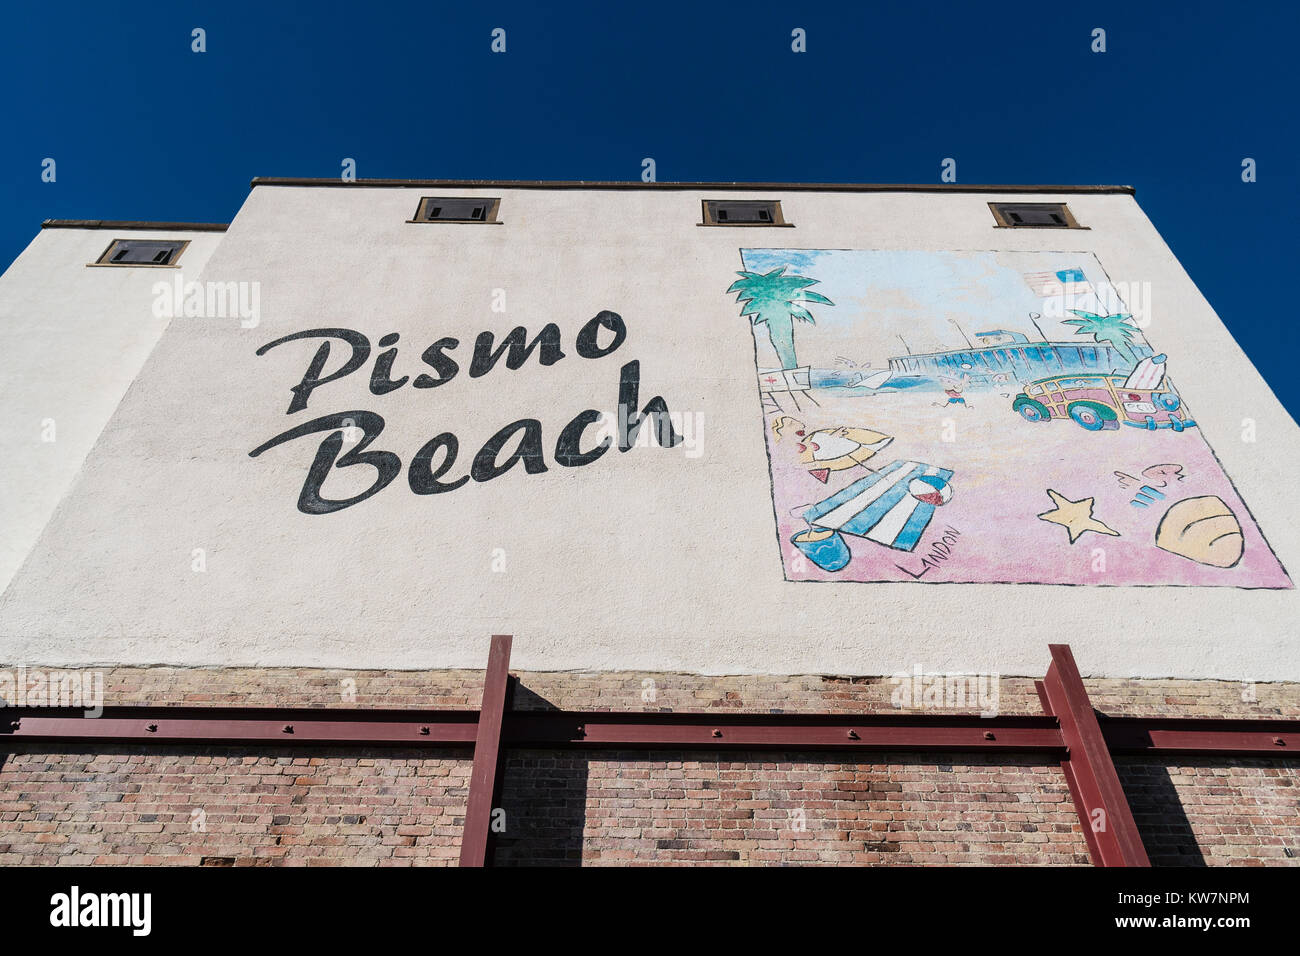 Pismo Beach ad on a multi-story building that includes a huge painting and the words 'Pismo Beach' next - Stock Image